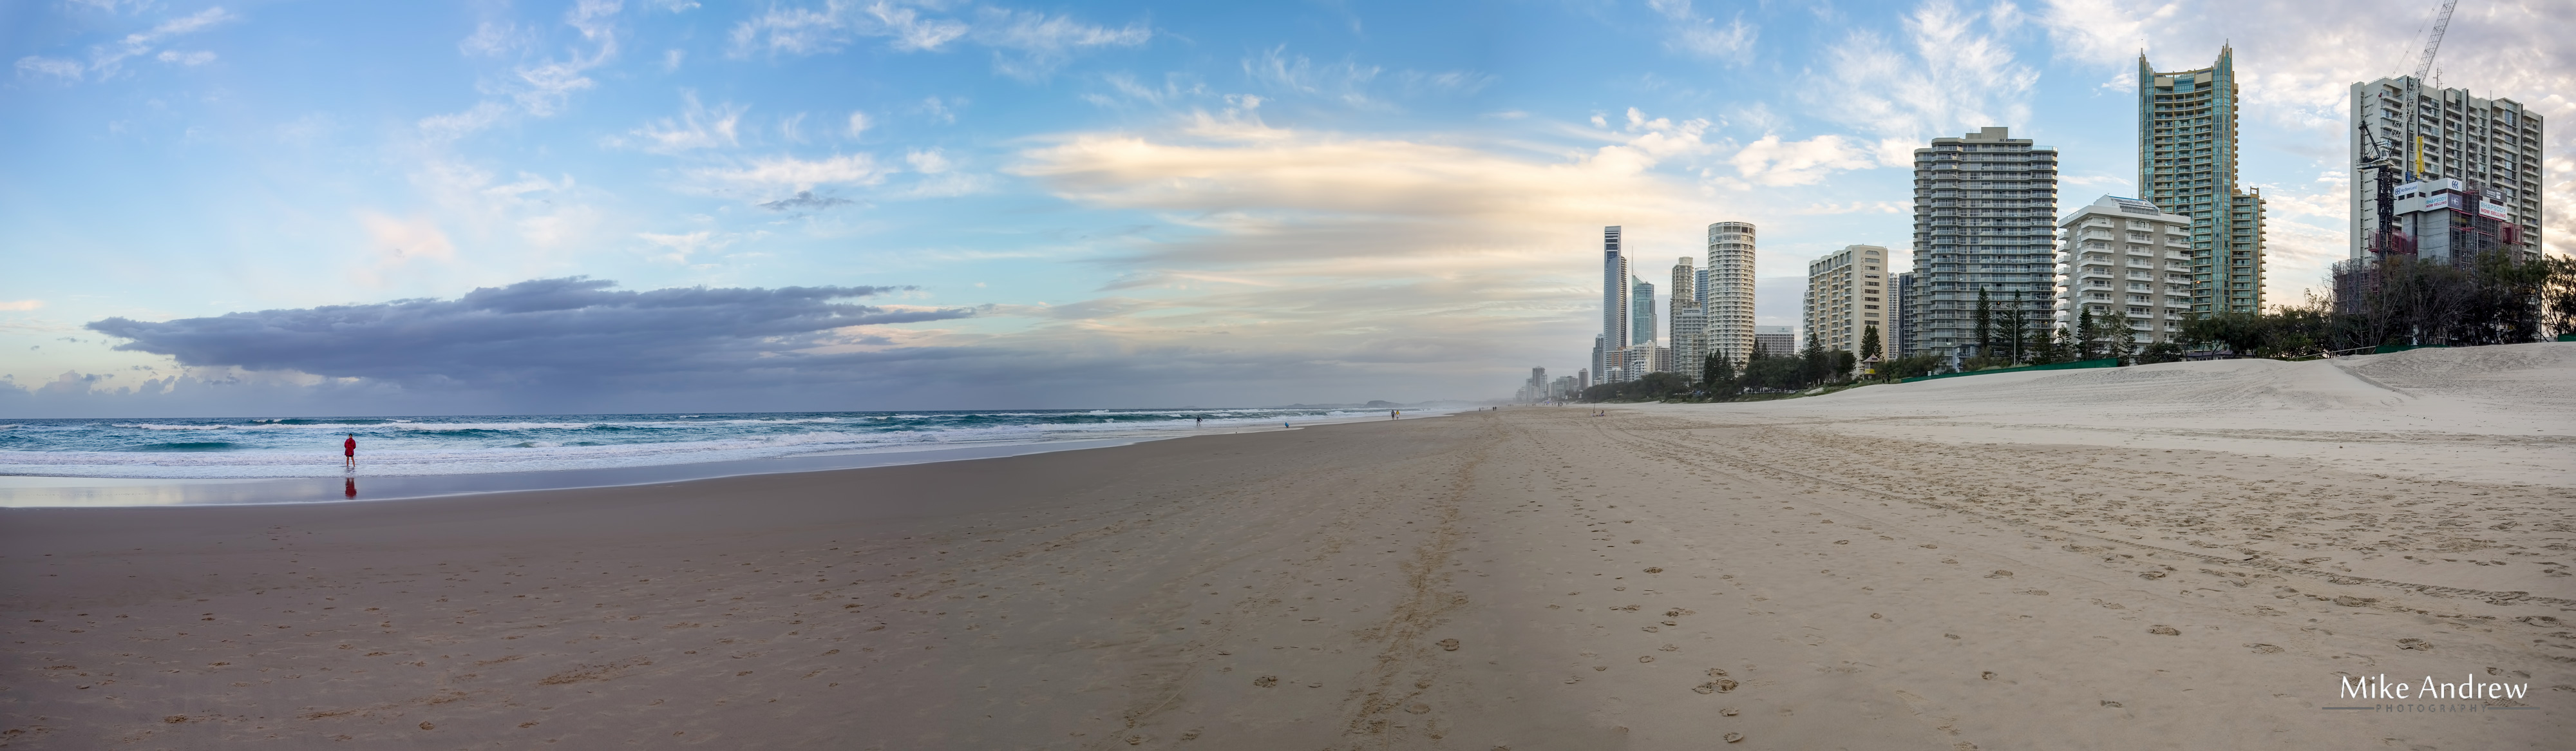 surfers paradise beach panorama